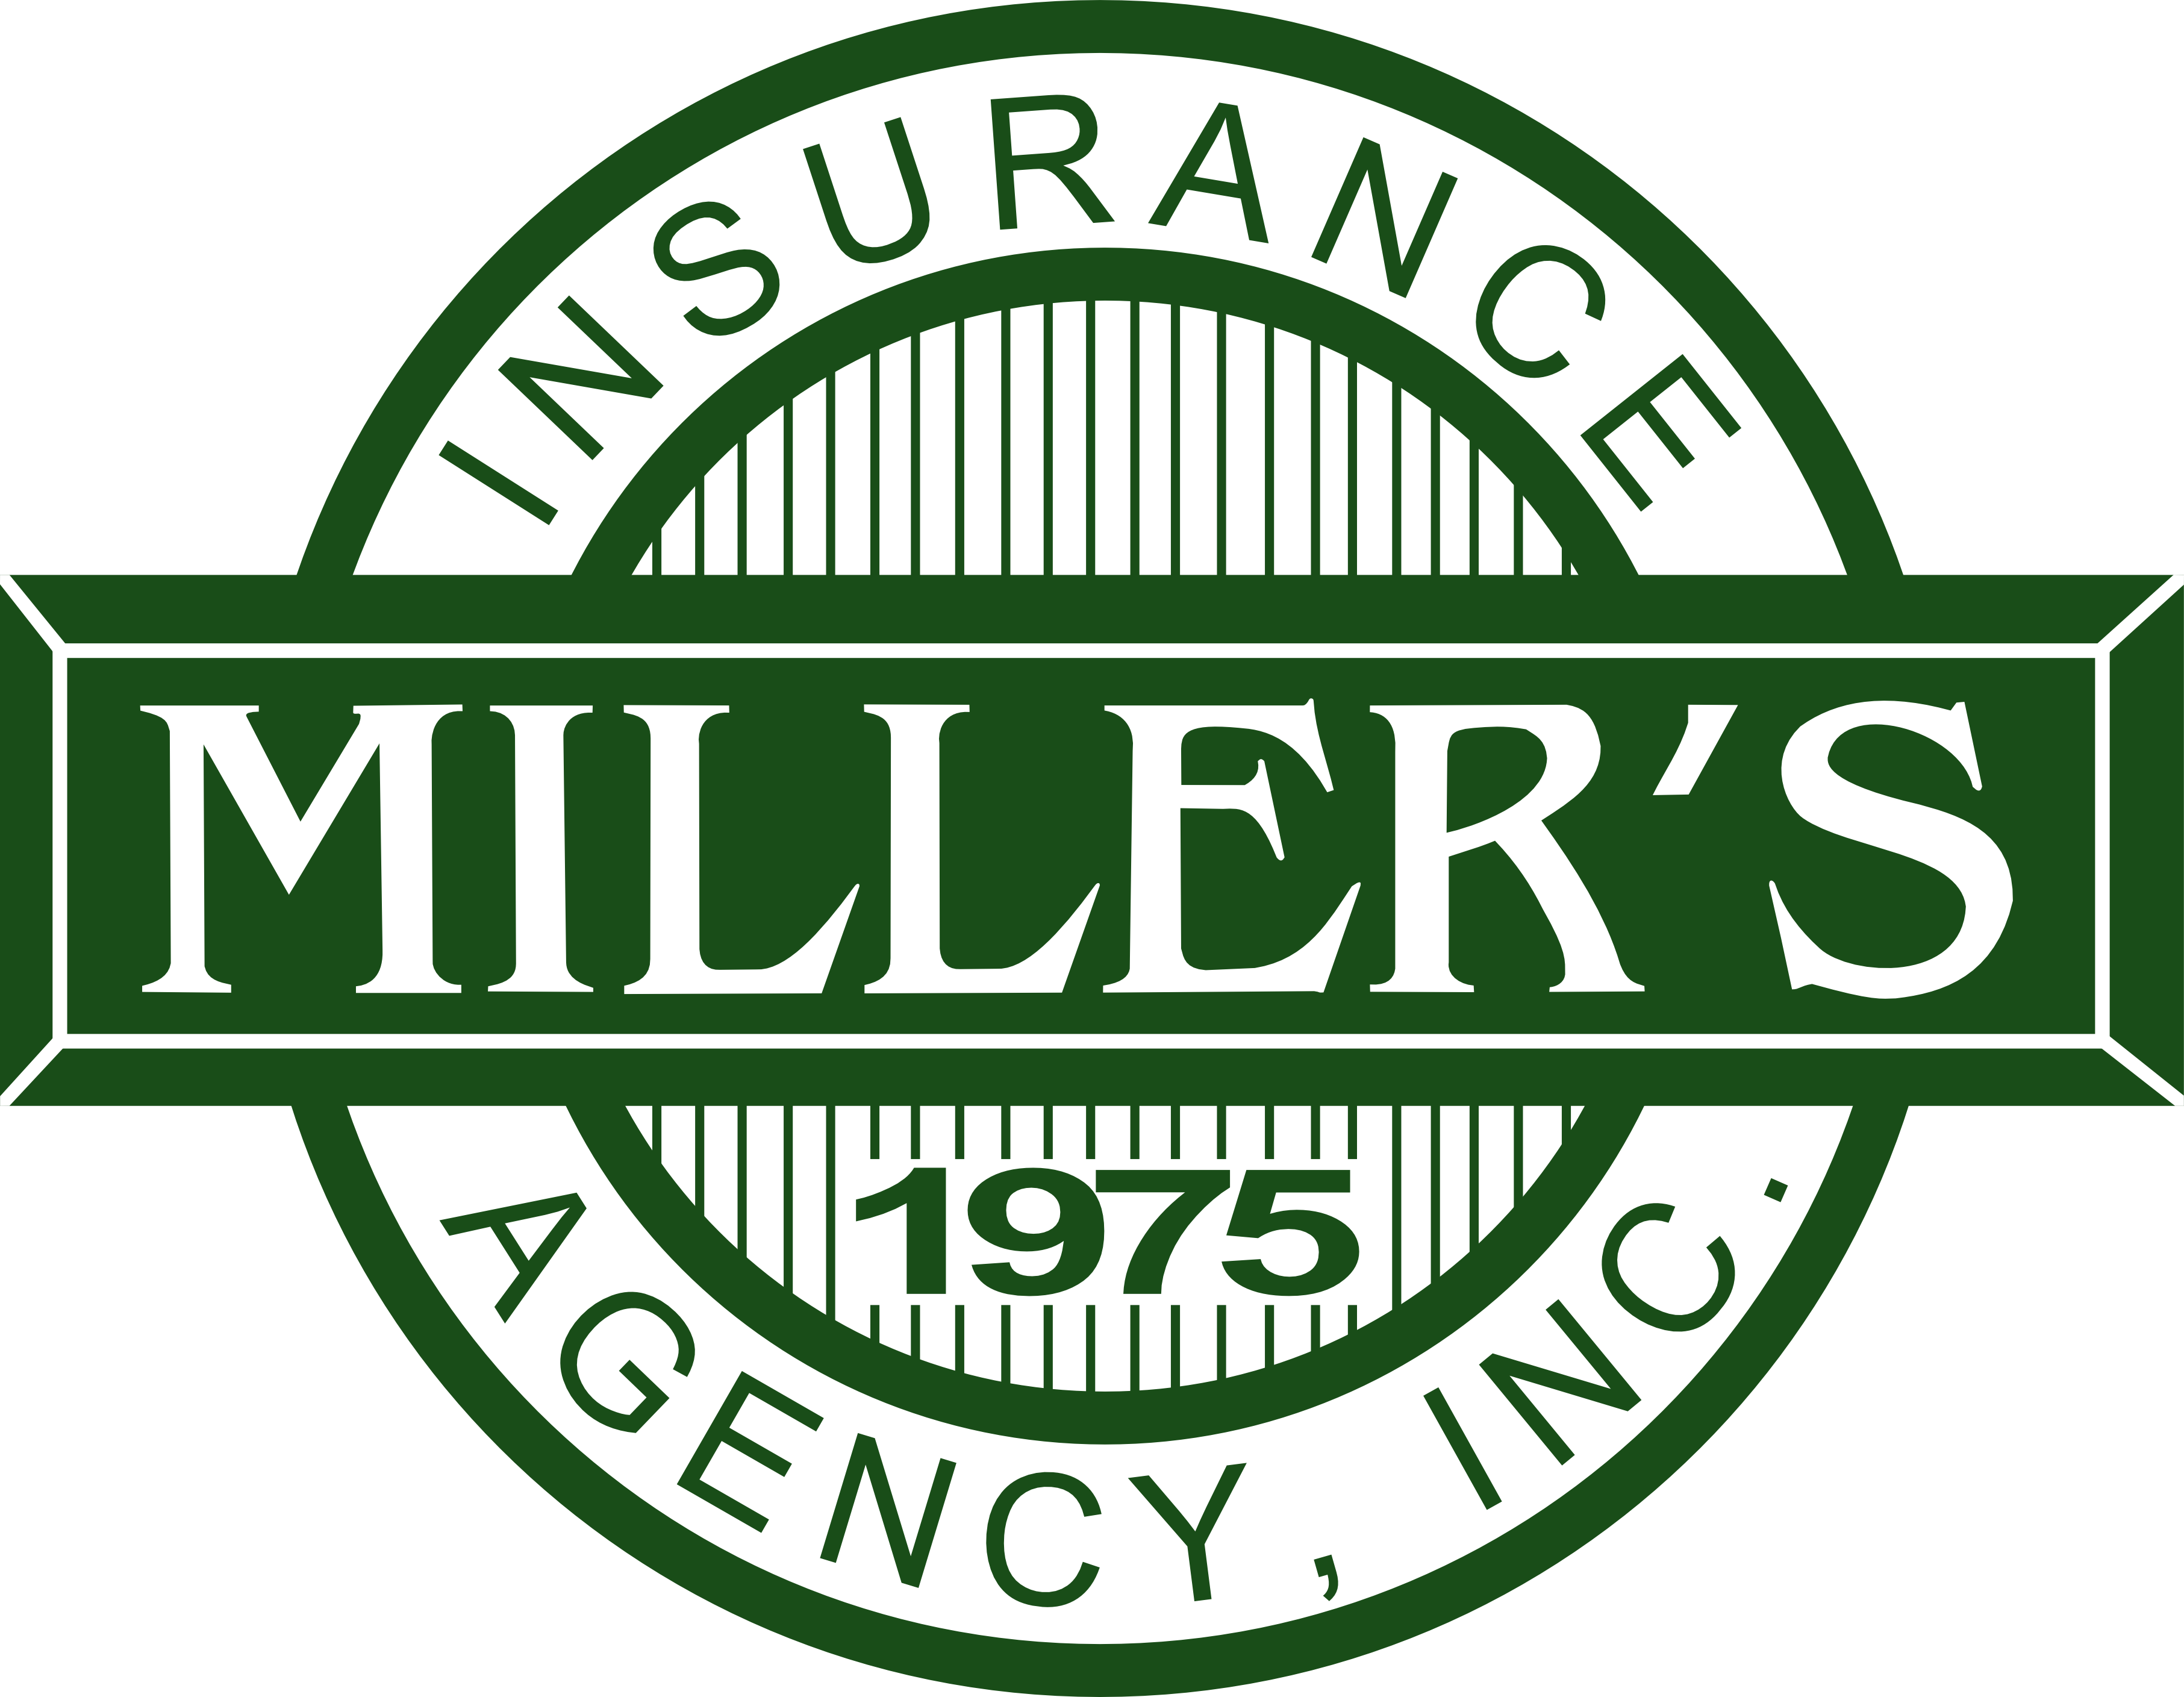 miller s insurance agency library human resource health safety assistance accessible 24 7 via desktop laptop computers apple iphones ipads and android phones tablets